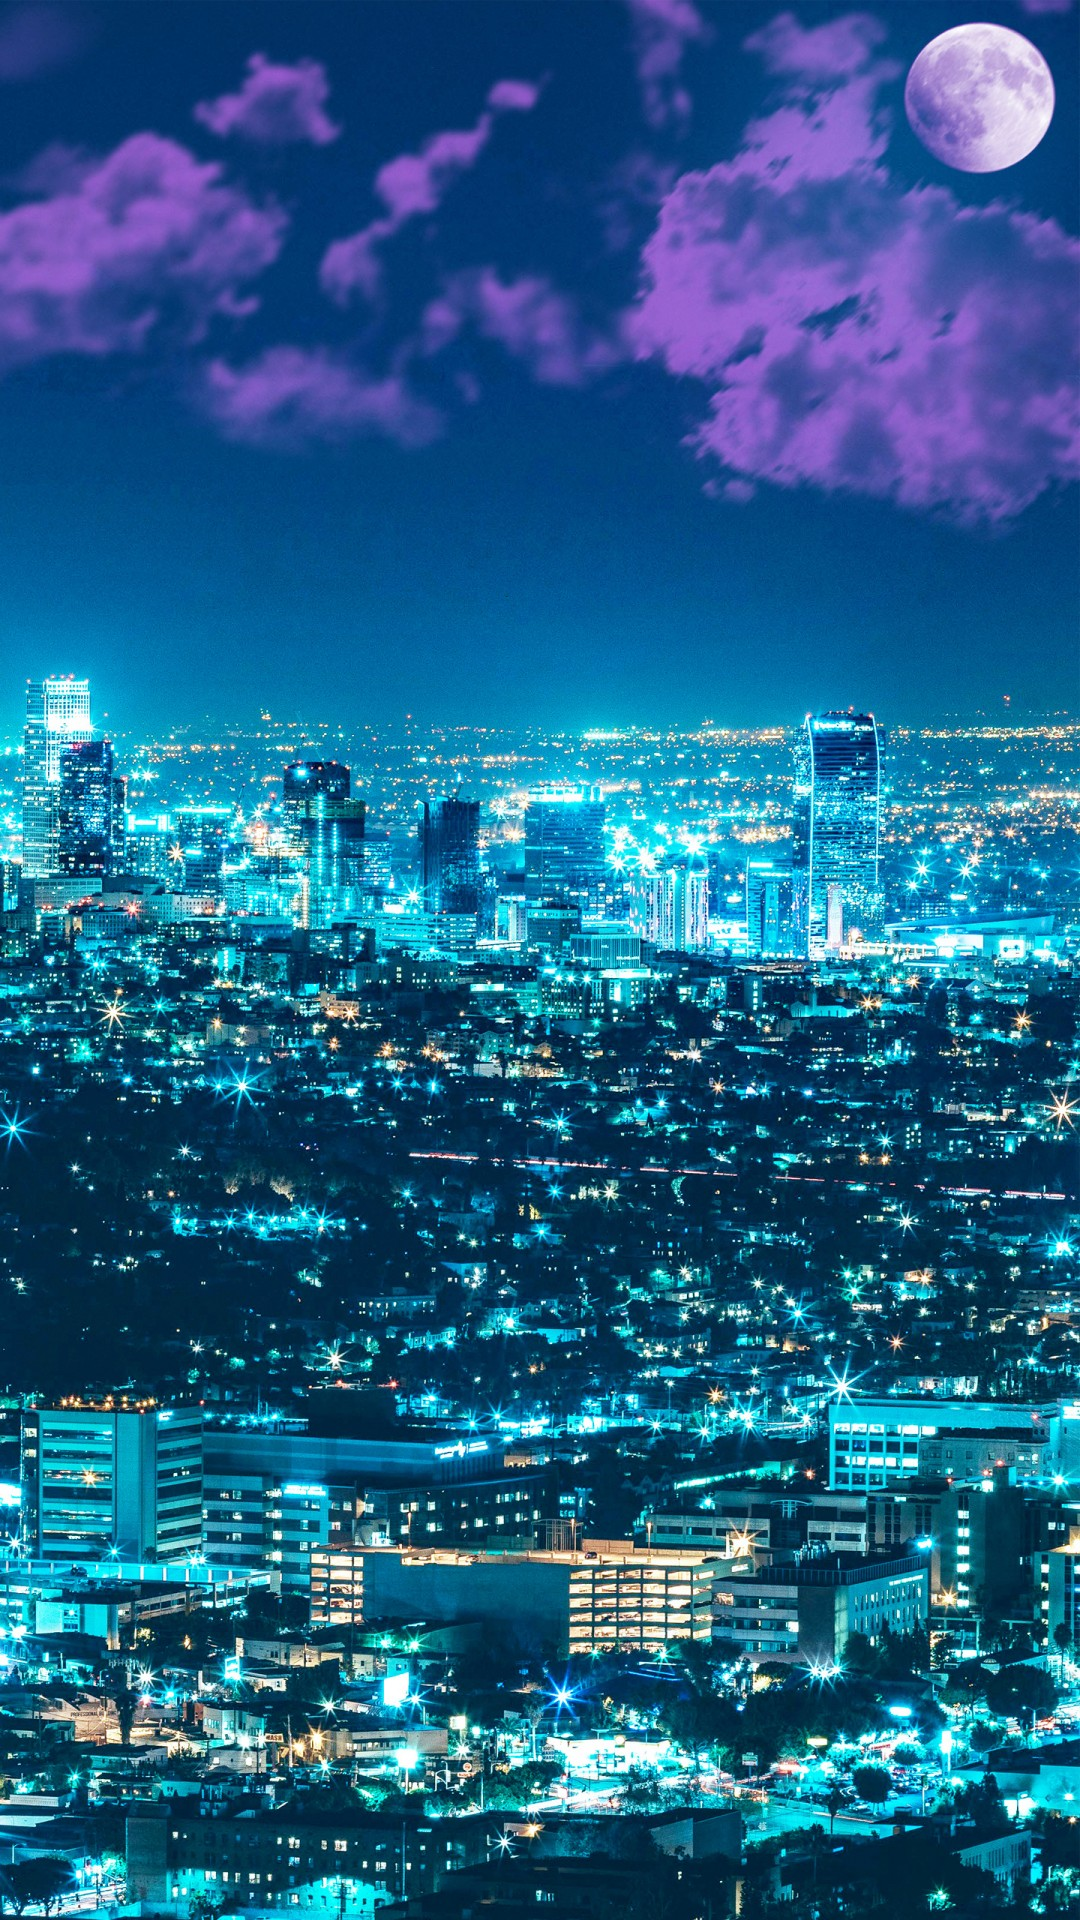 Los Angeles Wallpaper Iphone 6 Plus Los Angles Night Cityscape 4k Wallpapers Hd Wallpapers